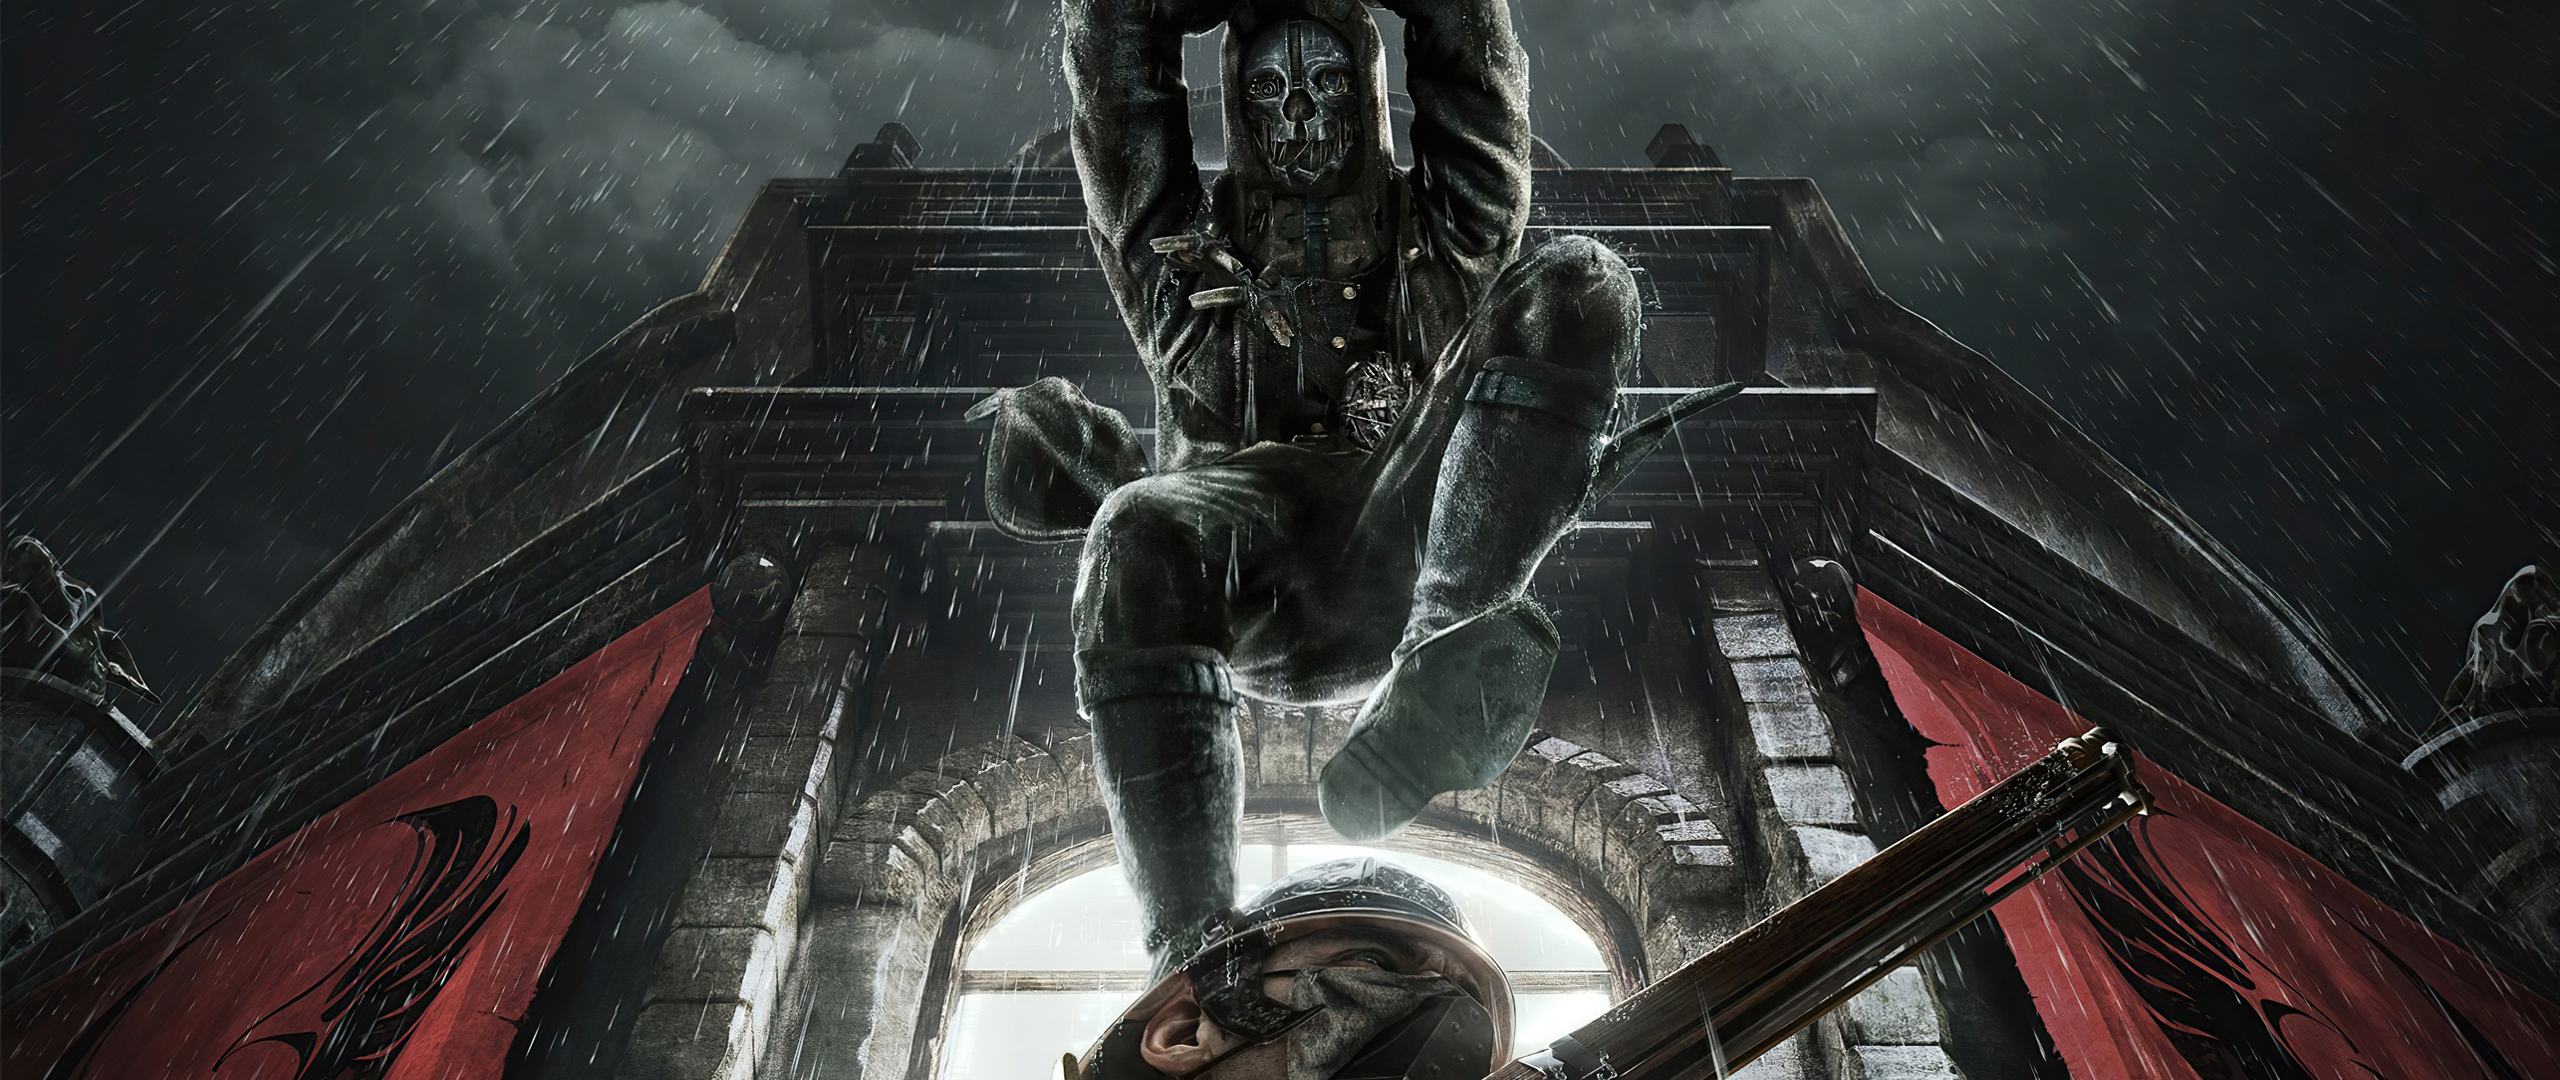 2560x1080 Dishonored Death From Above 2560x1080 Resolution ...